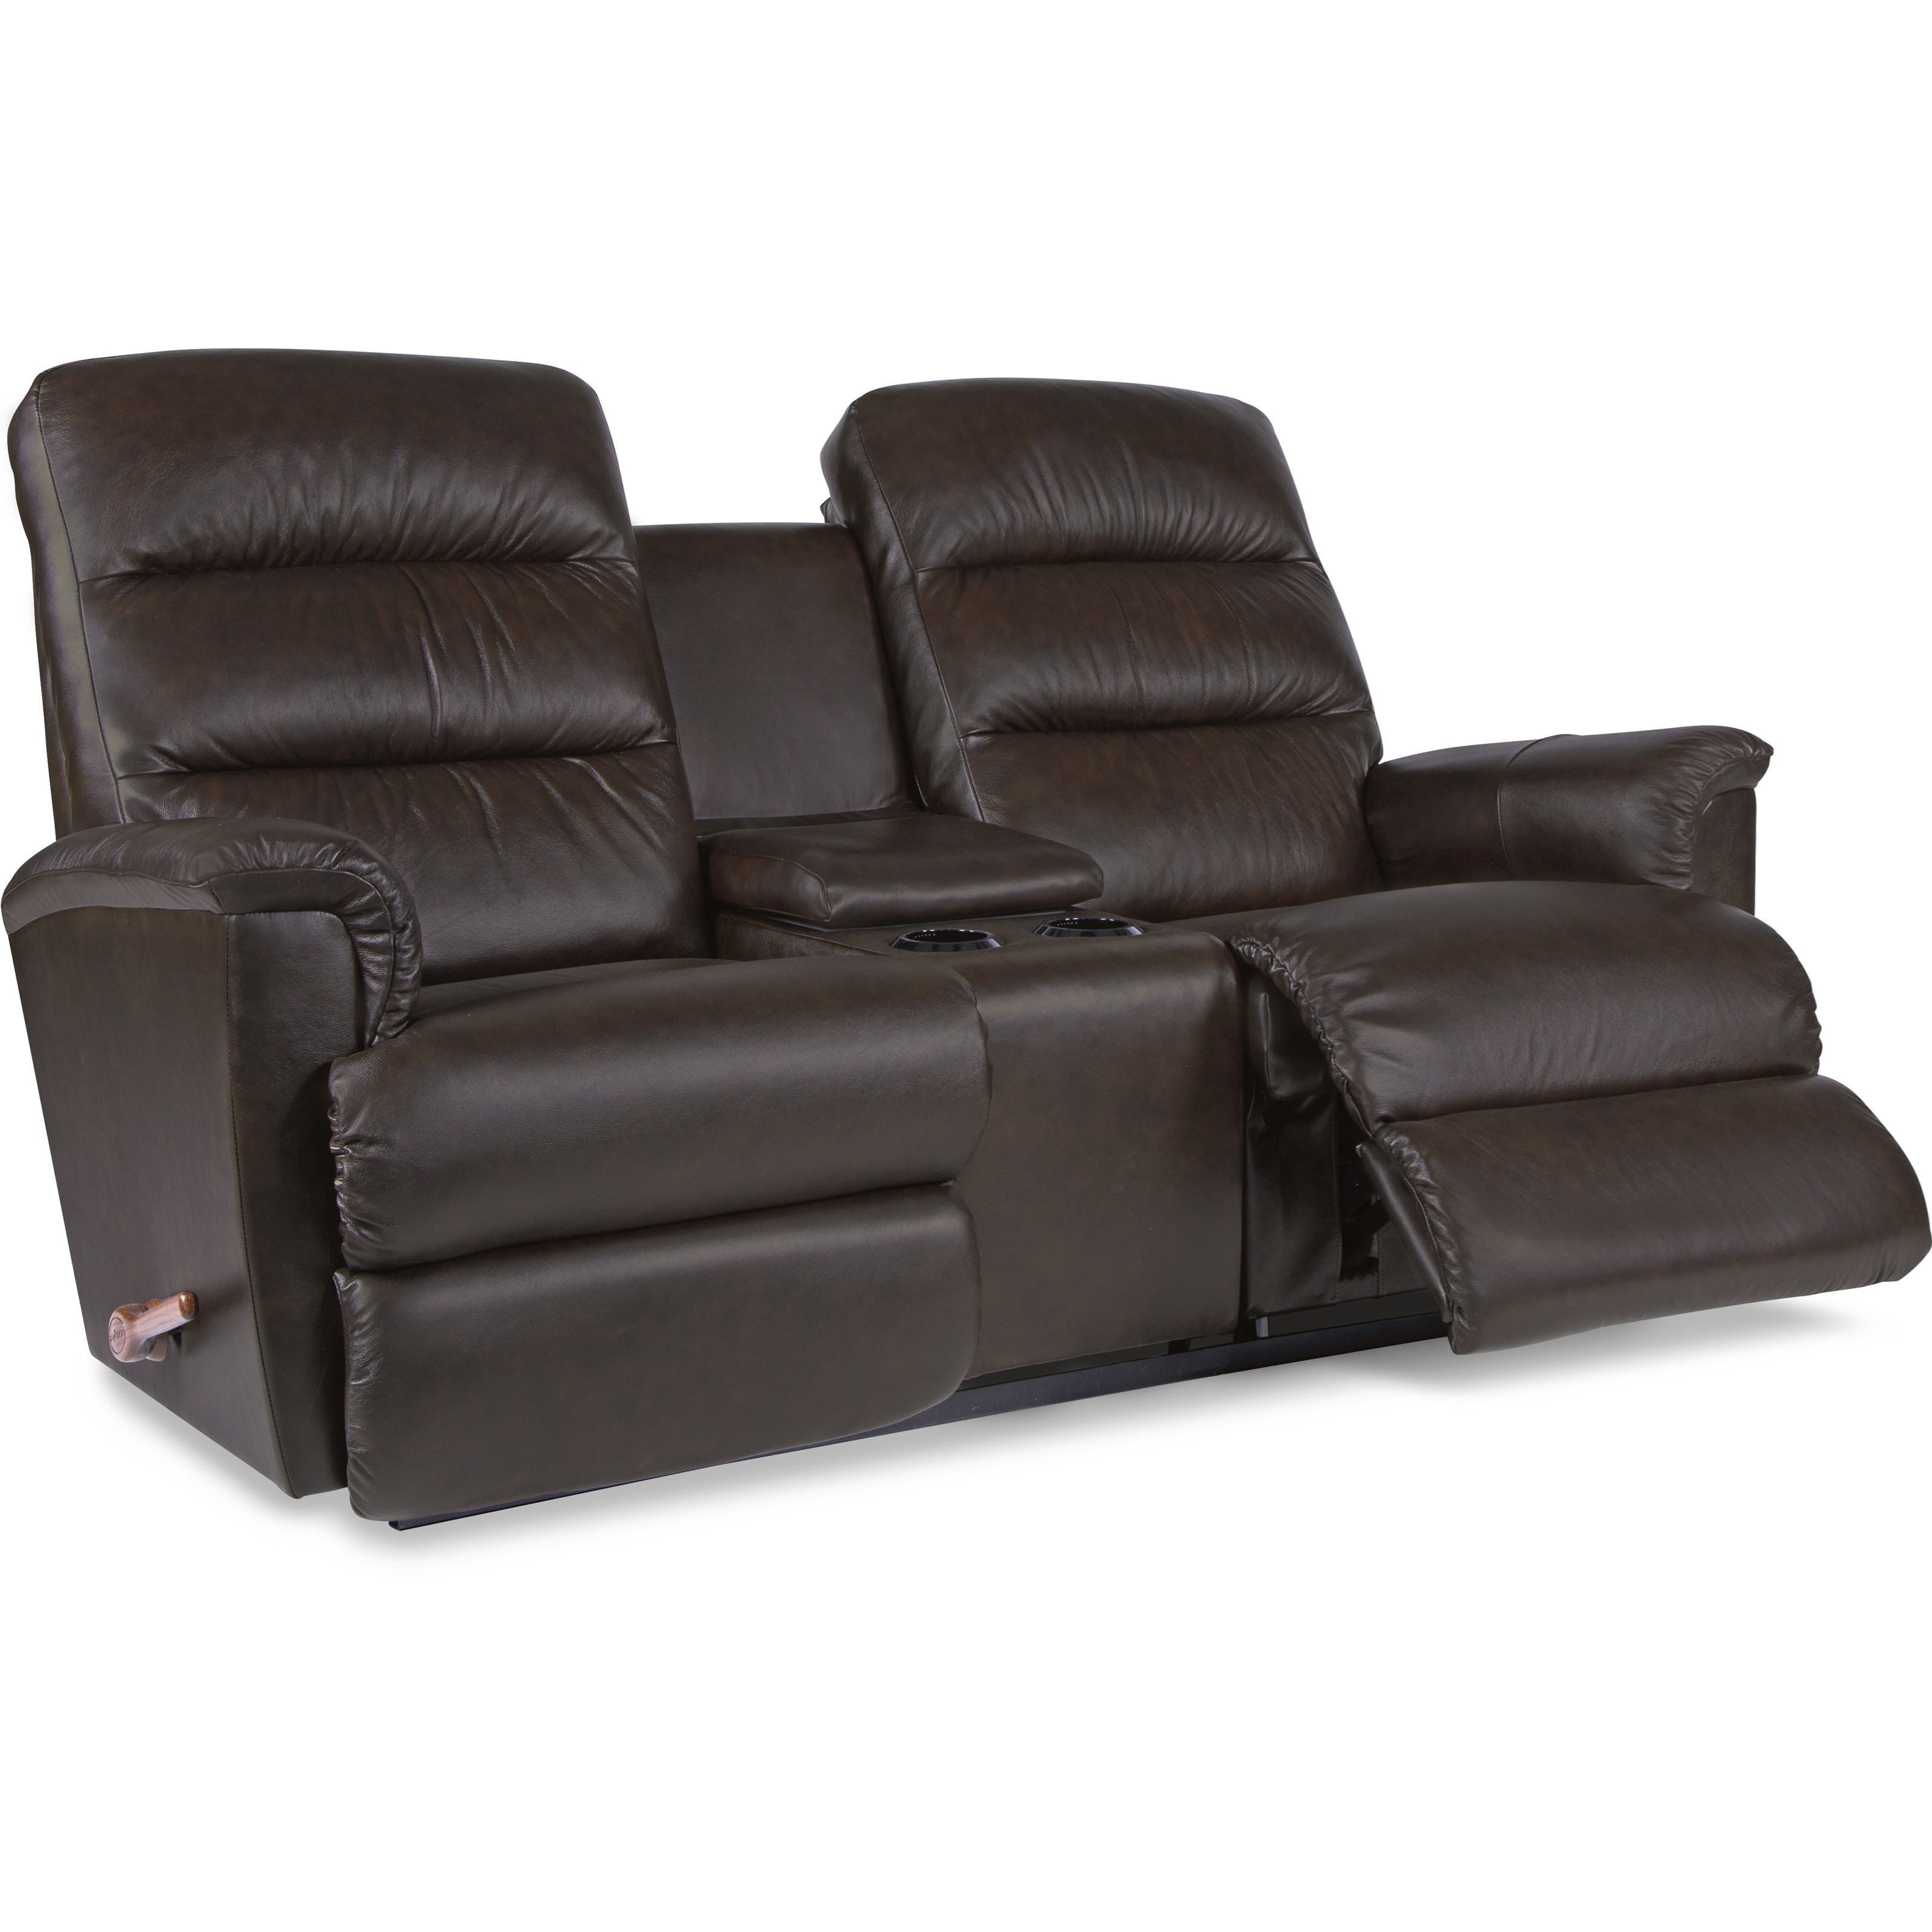 La z boy tripoli wall saver reclining loveseat with cupholder and storage console zak 39 s fine - Ways of accessorizing love seats ...